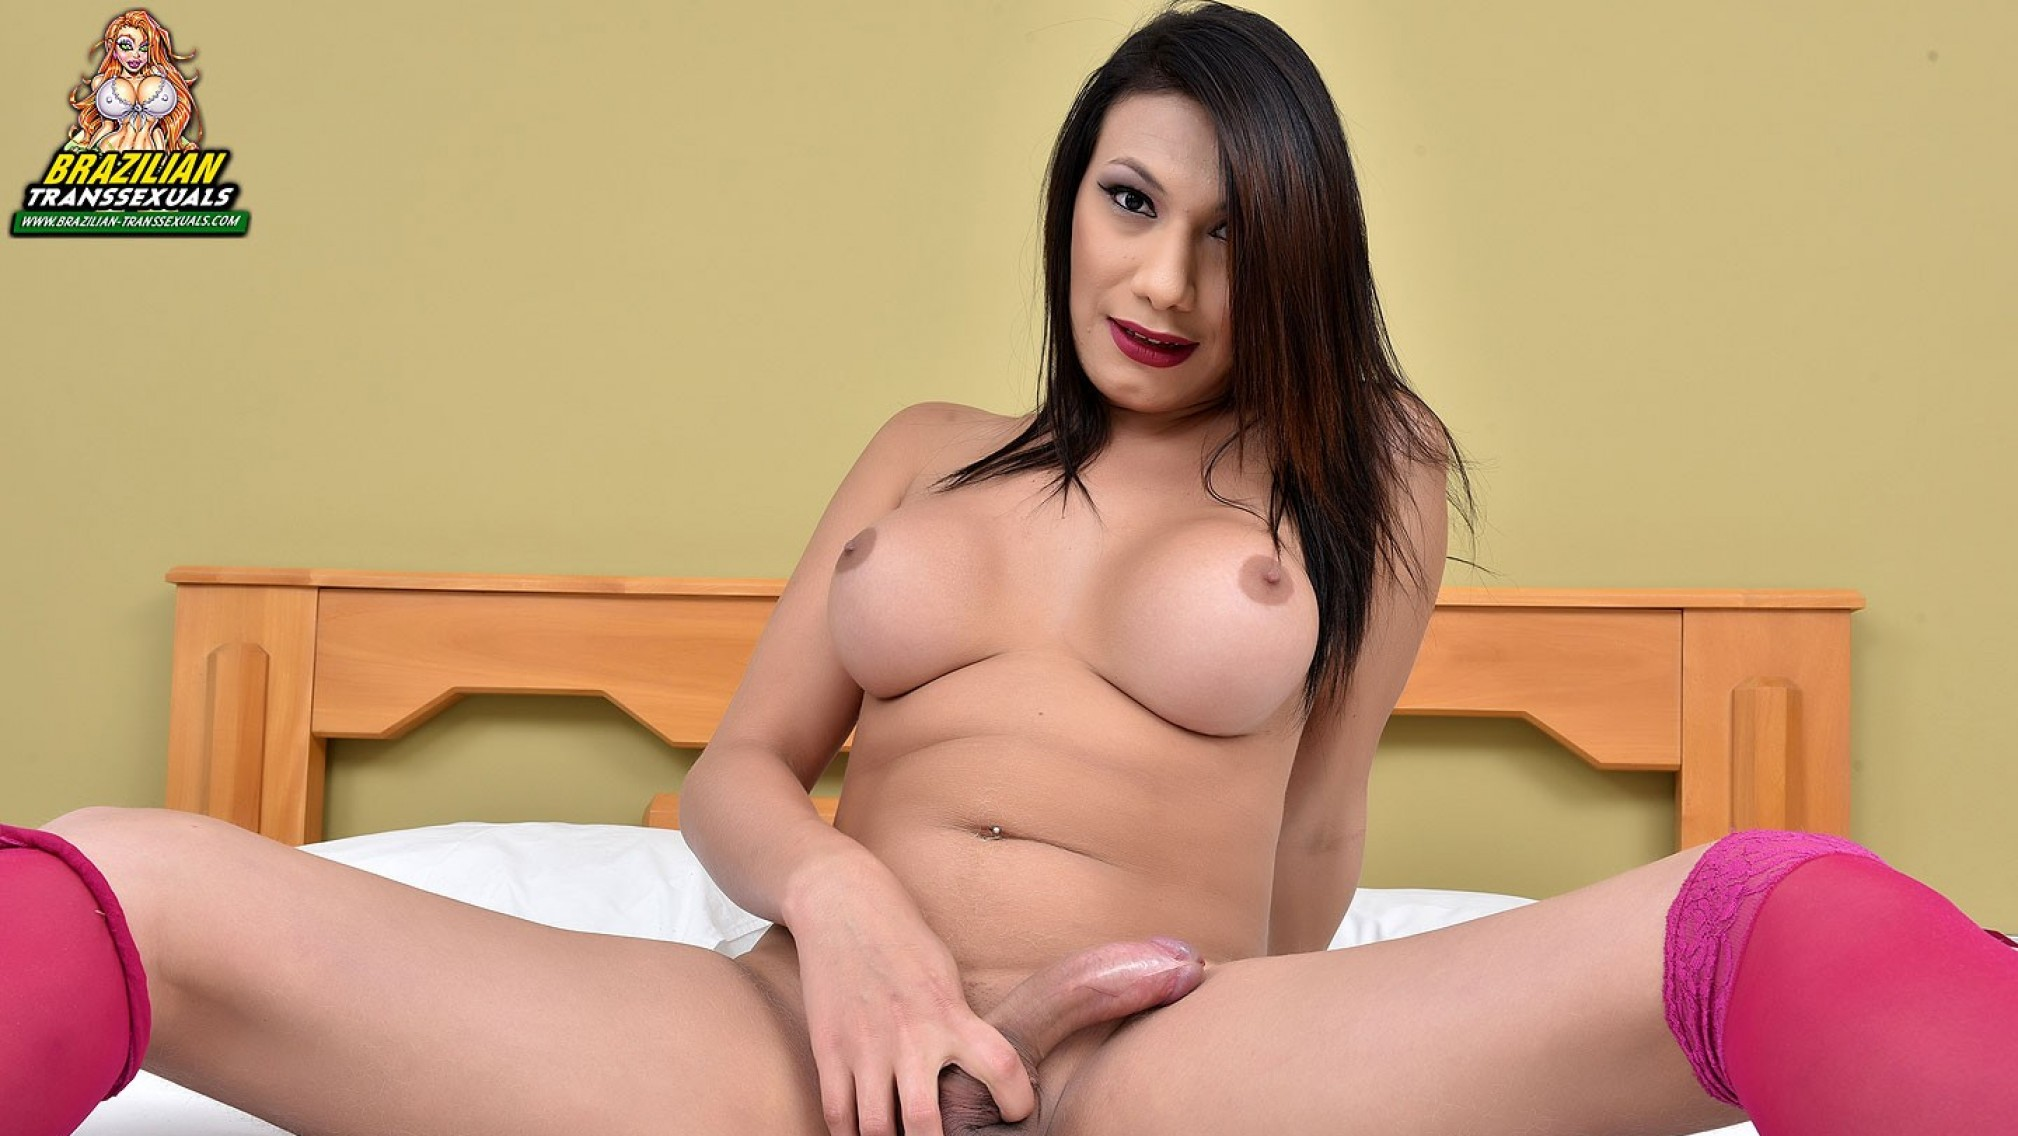 Beautiful Gabriielly Soares Jacks Off! - Brazilian-Transsexuals leah gotti date of birth